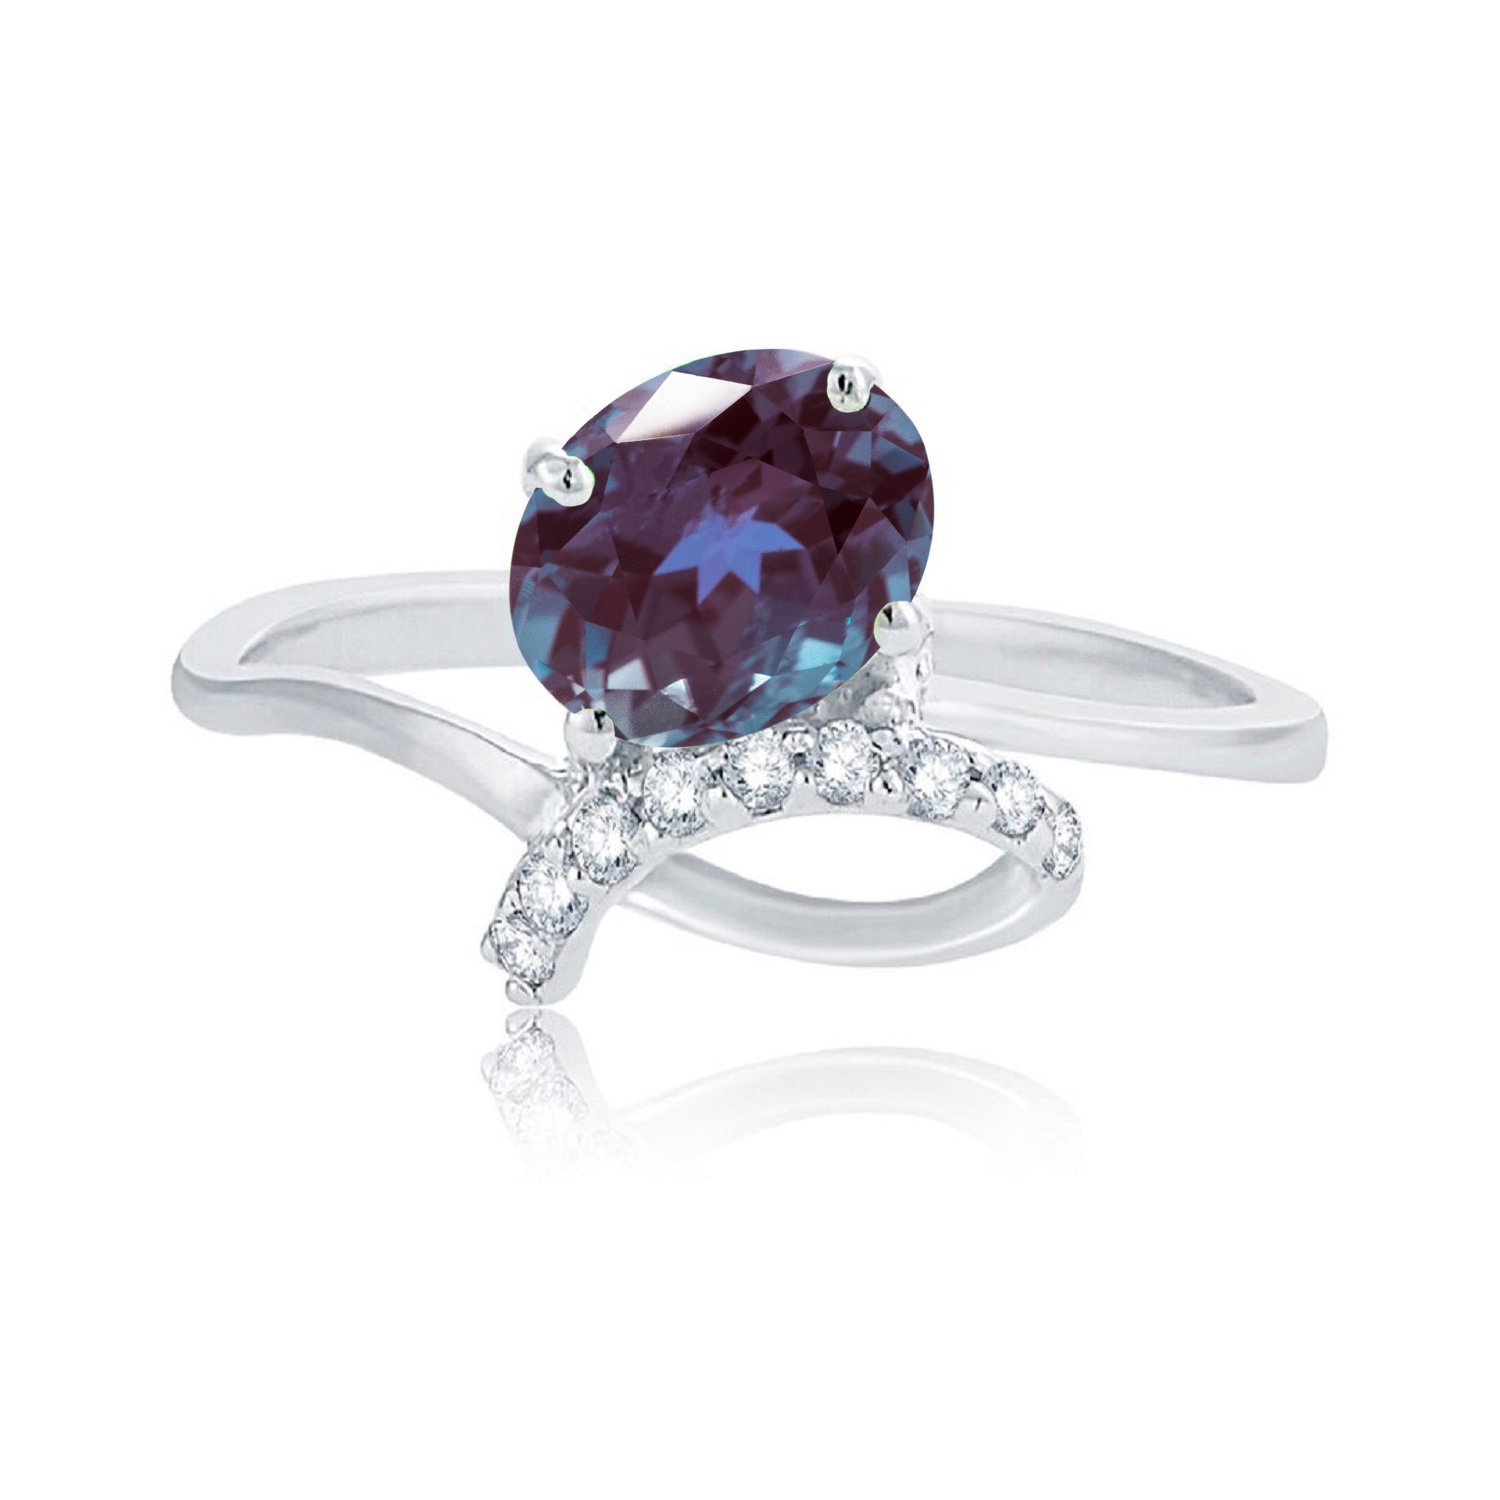 Sterling Silver with Color Changing Alexandrite and Natural White Topaz Promise Ring V3 Designs R95-45221L-BLX-$P